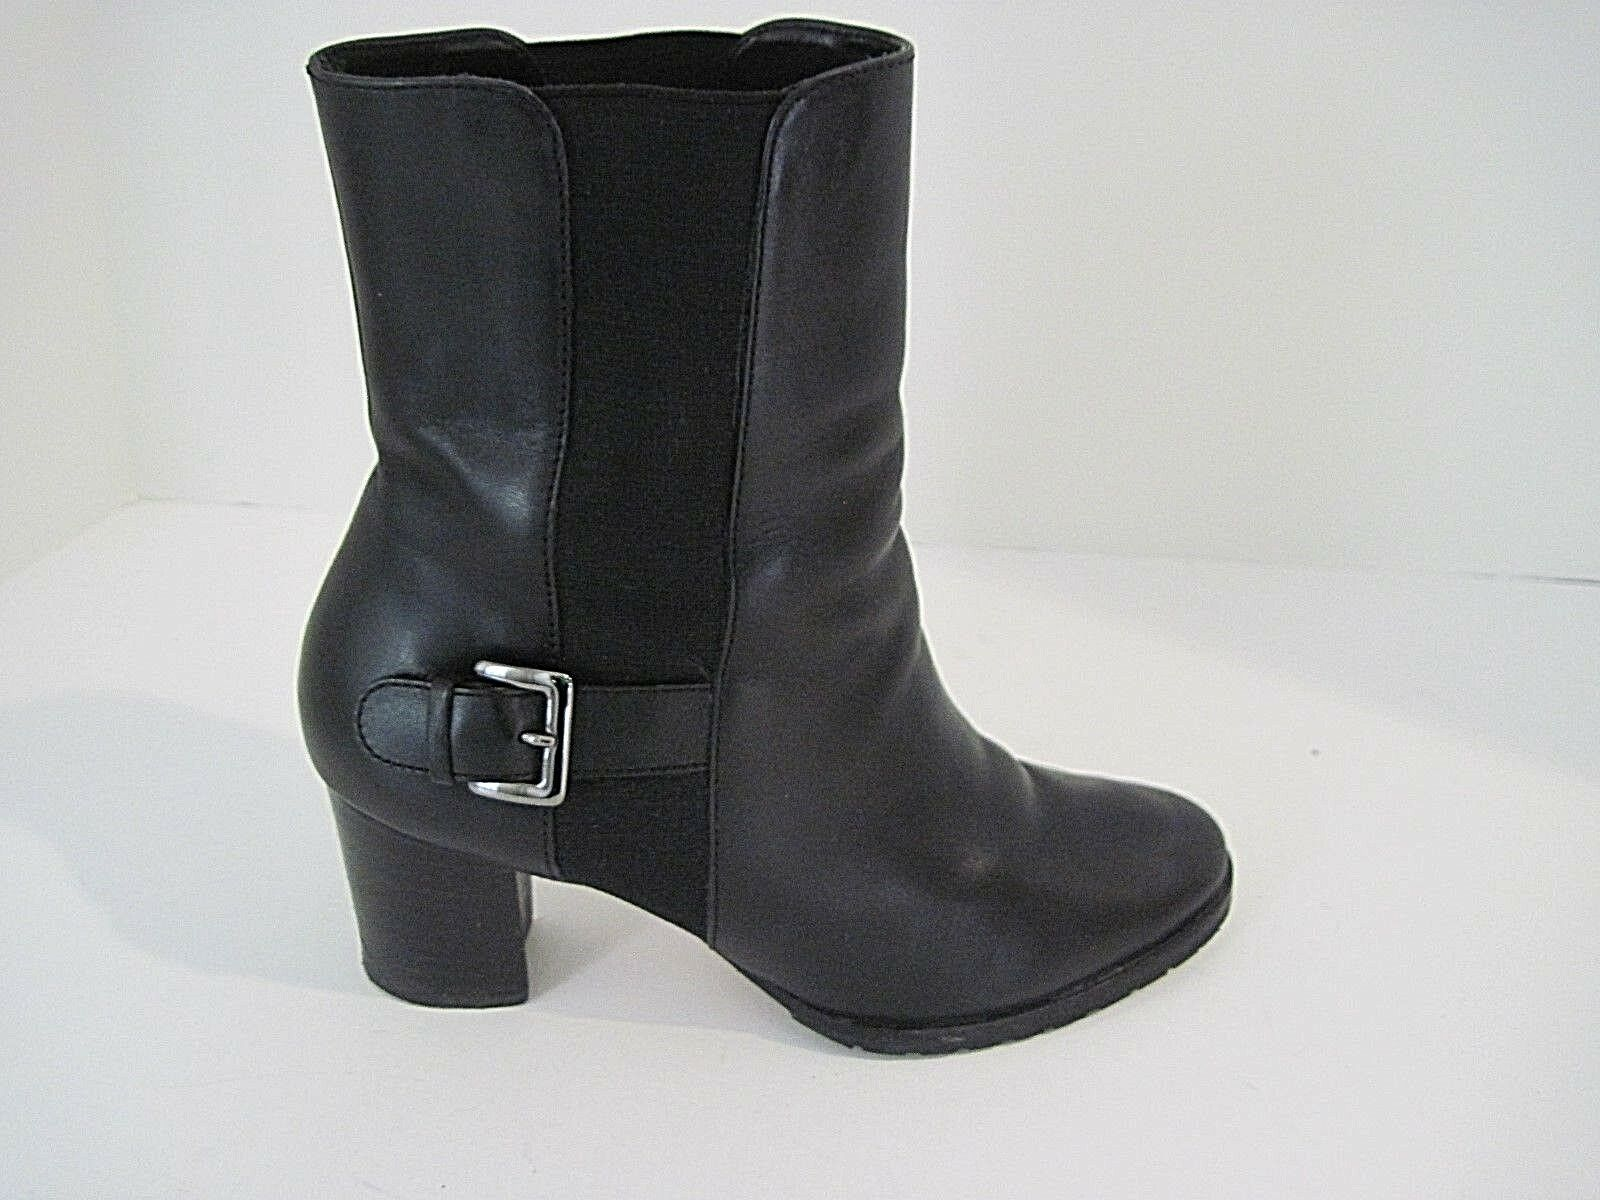 Women's Cole Haan D25456 Boots Black Leather Slip on Mid Calf Buckle Size 6B